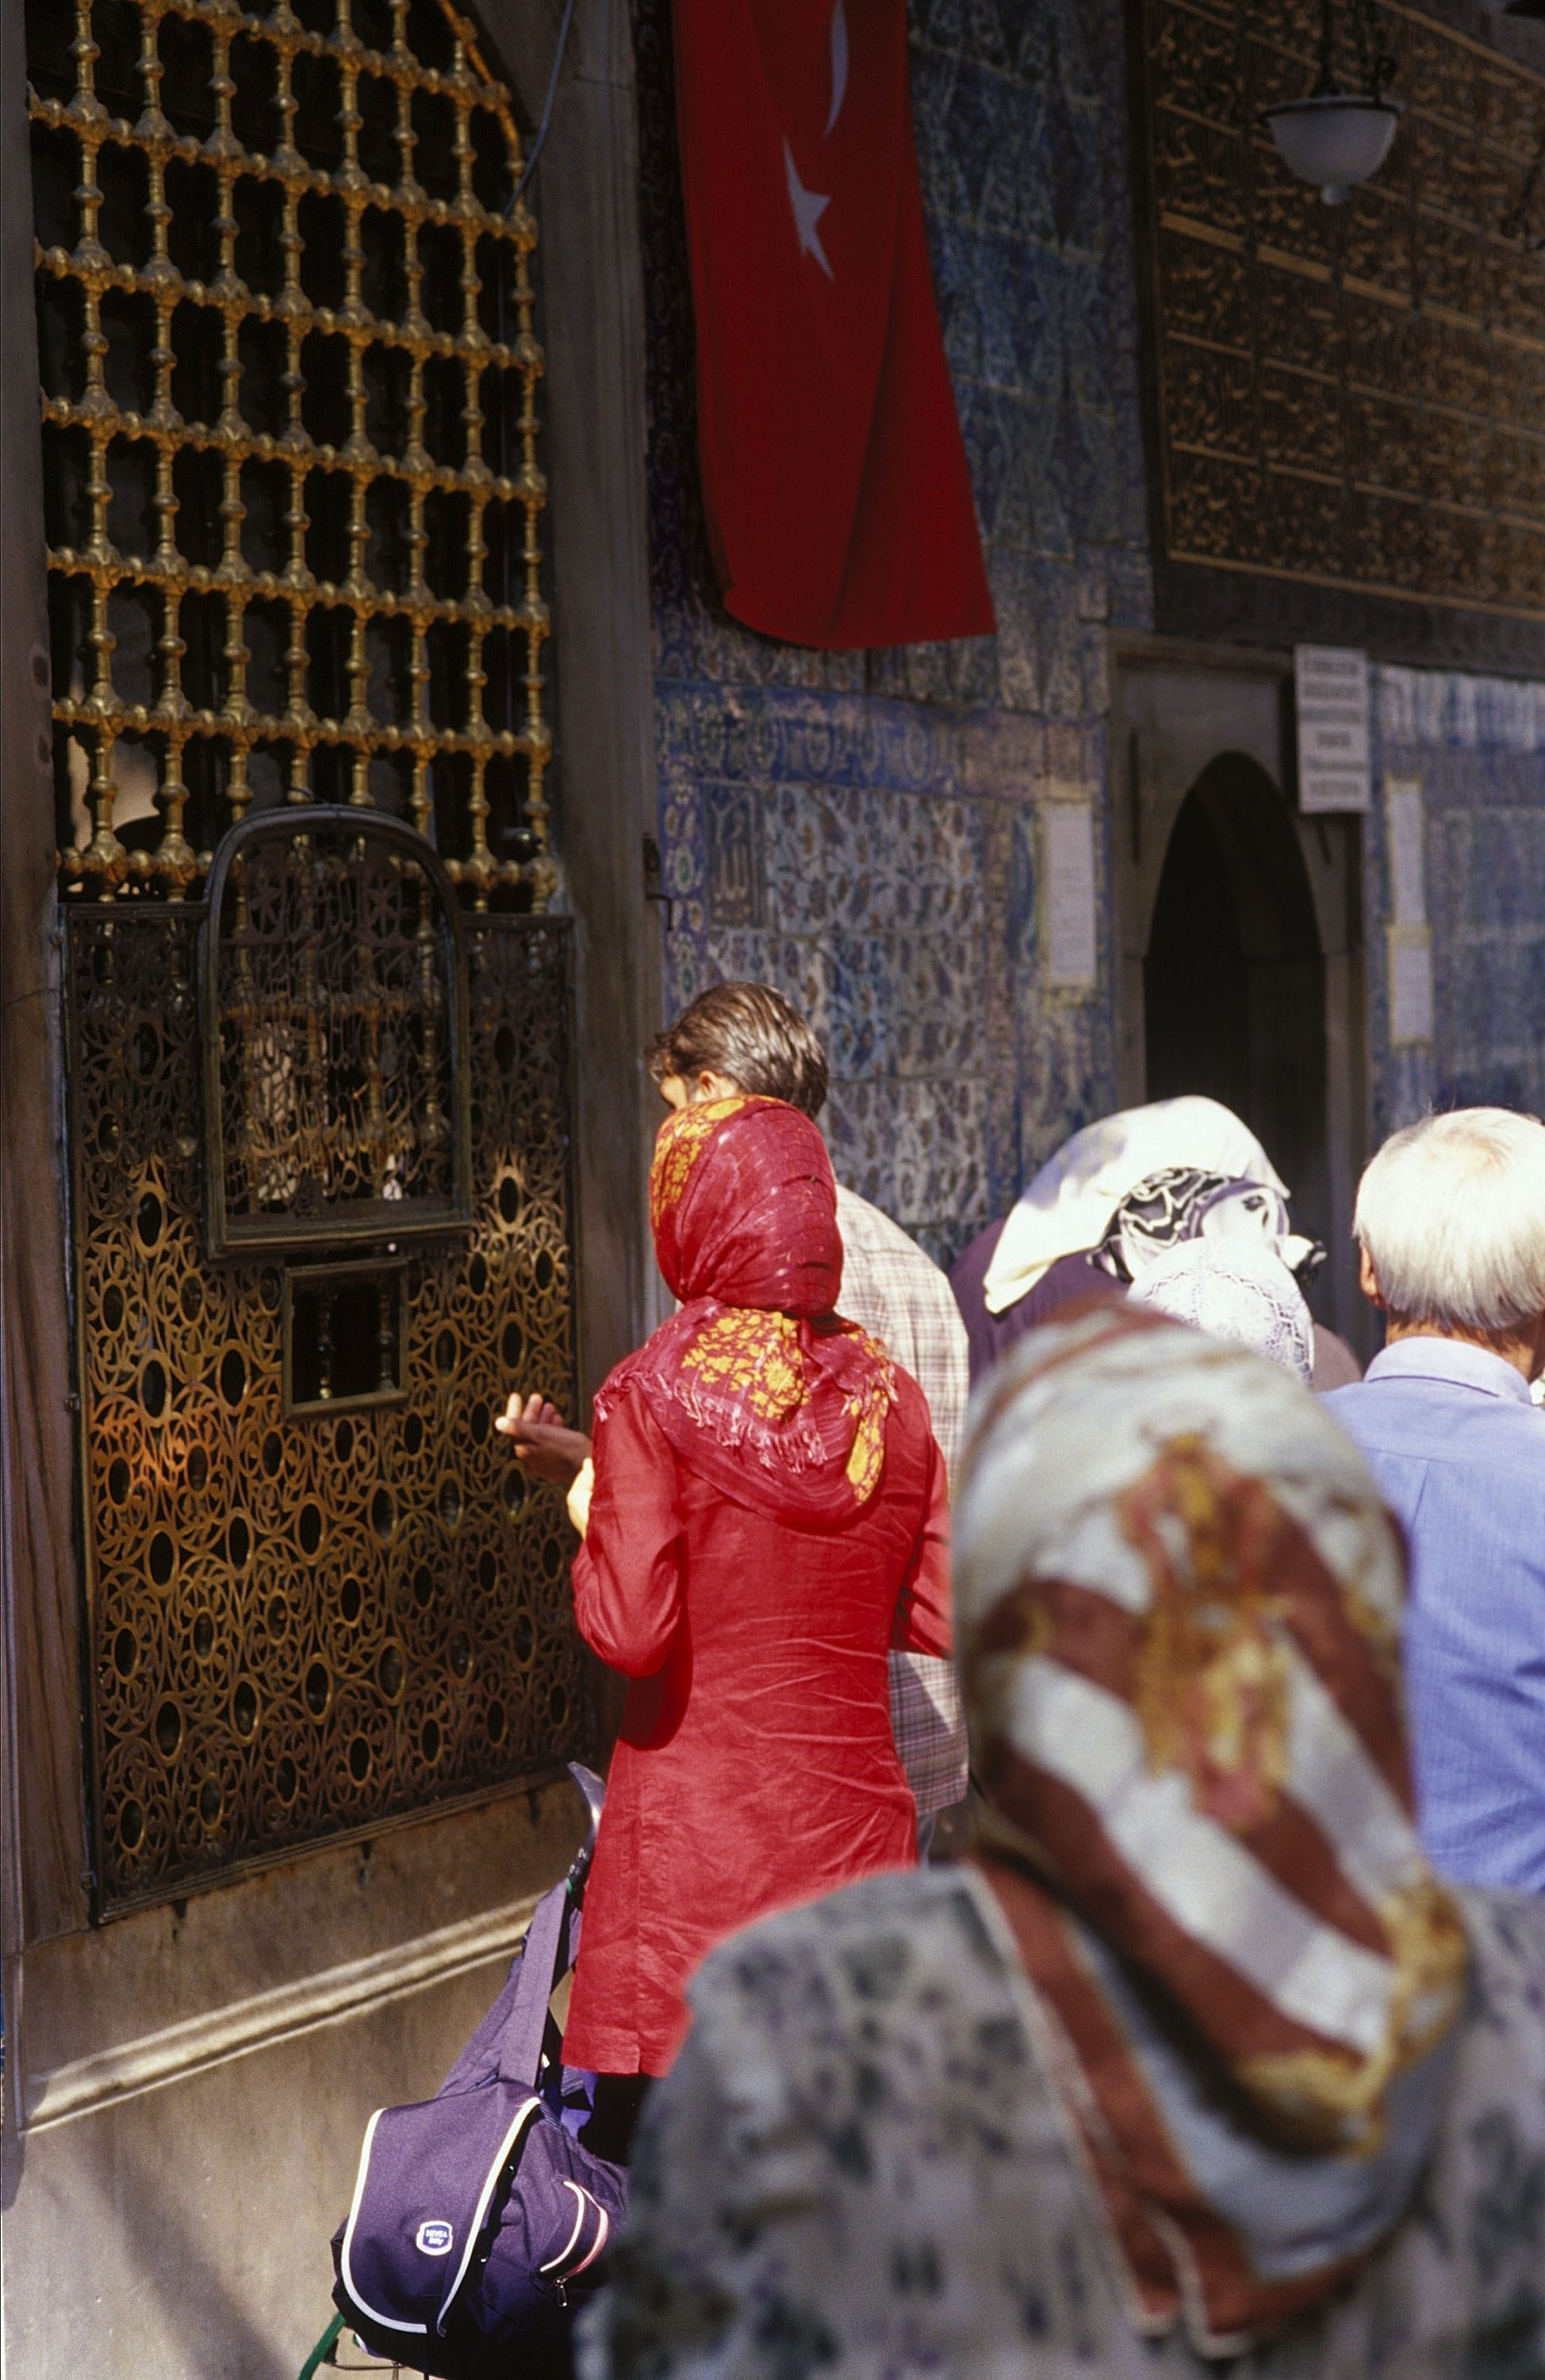 People praying in front of the Eyüp Sultan Mosque In Istanbul, Turkey, Sept. 1, 2002. (via Getty Images)